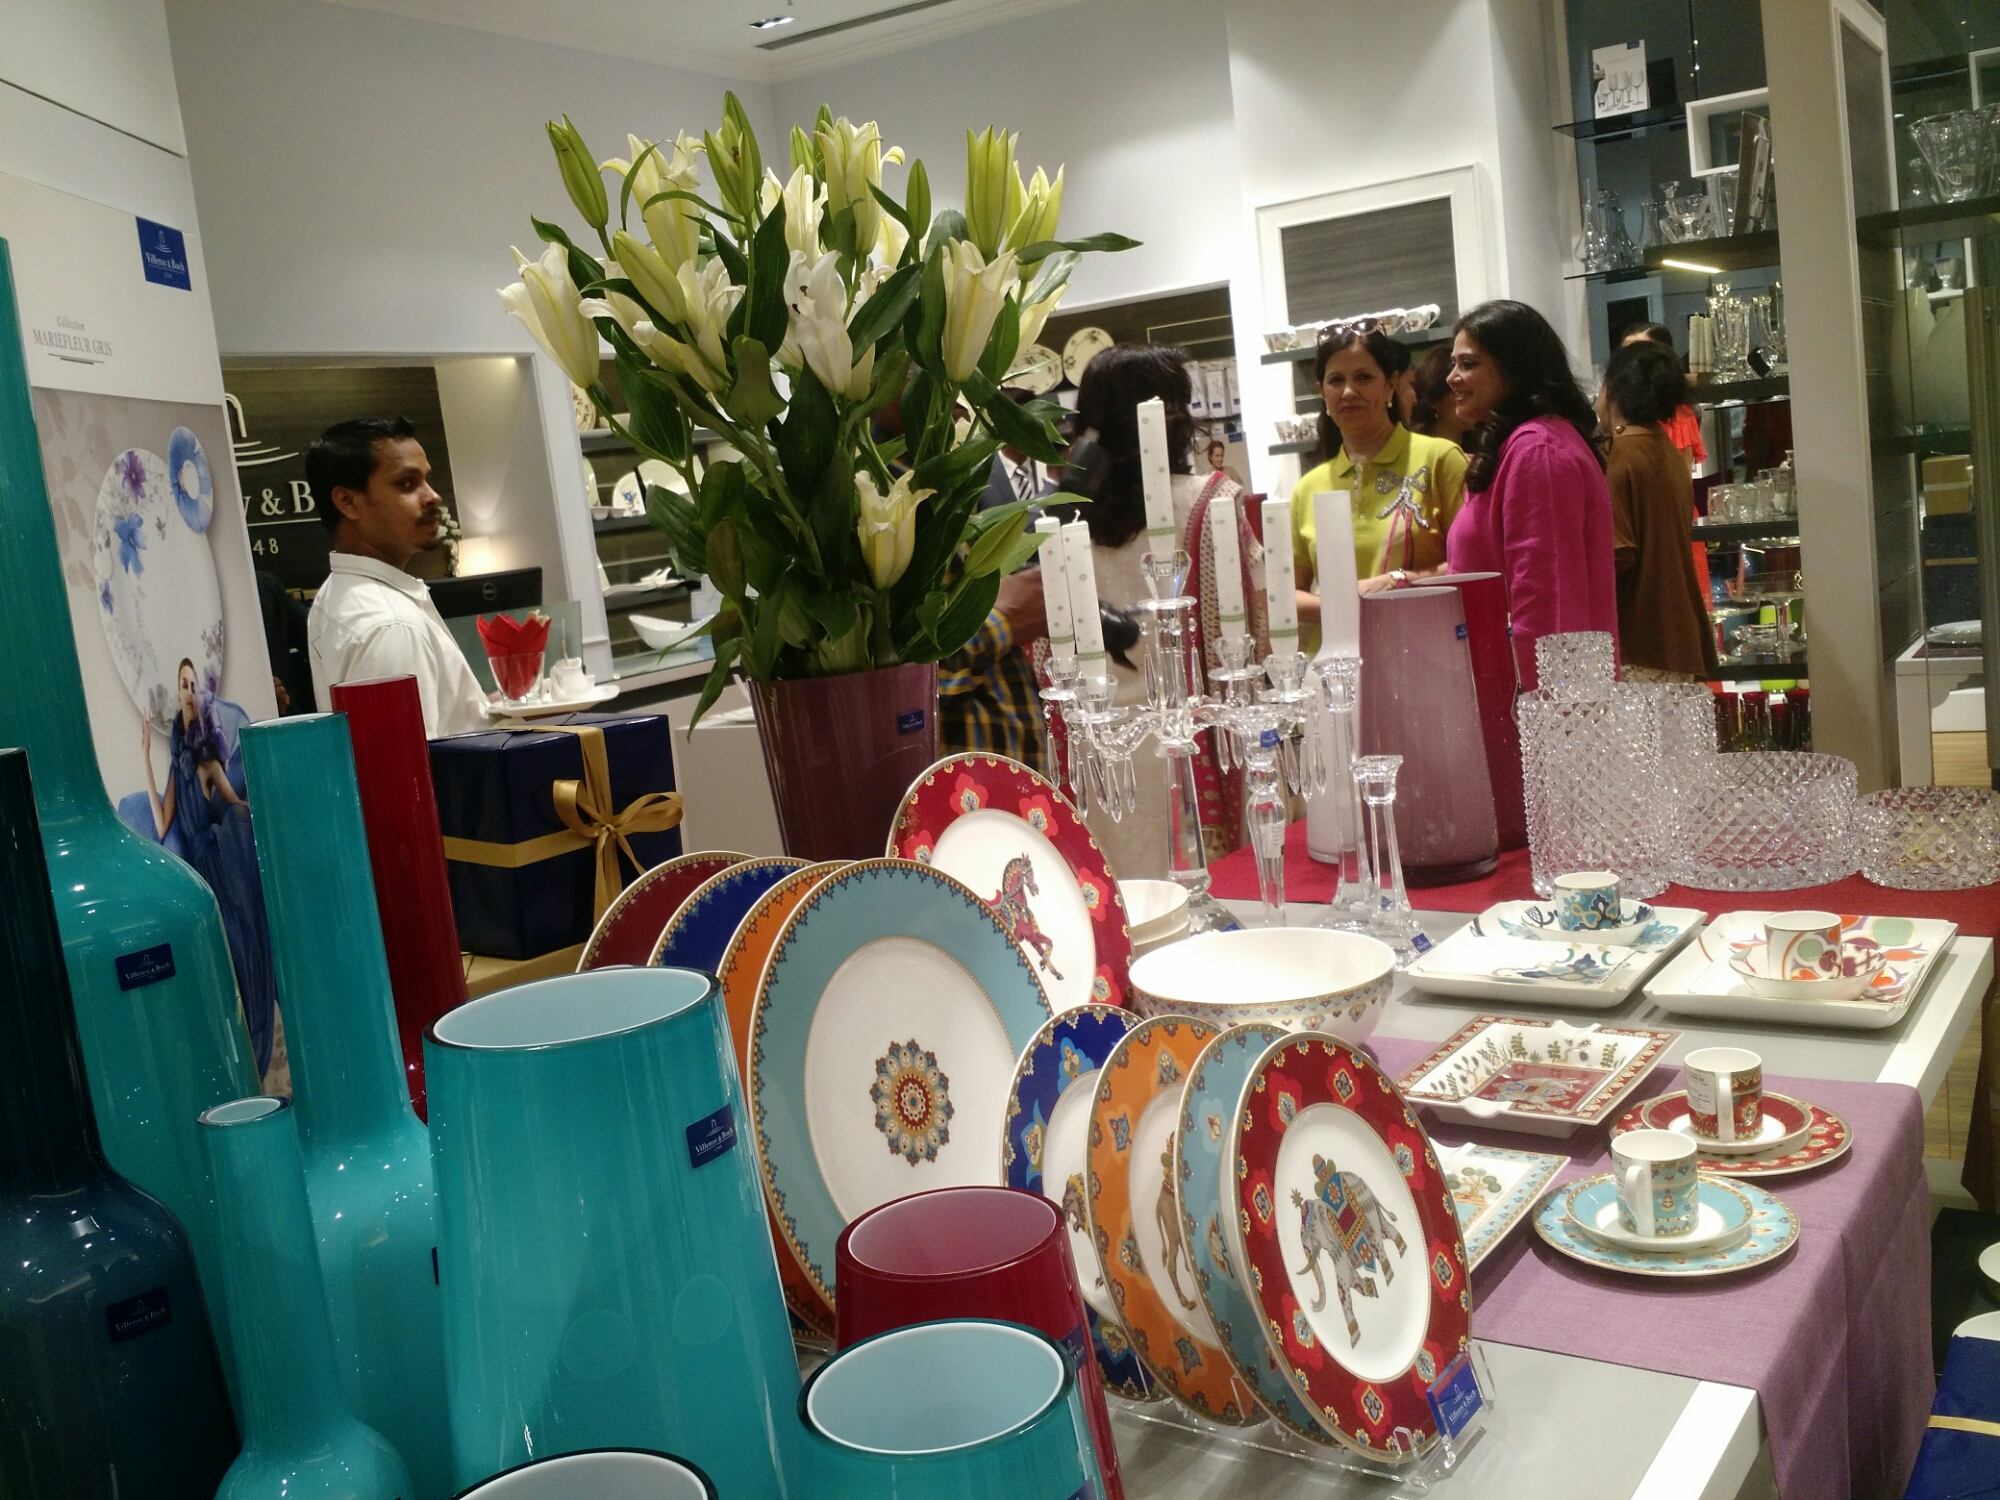 Launch of new villeroy boch tableware store in kolkata - Villeroy y bosch ...